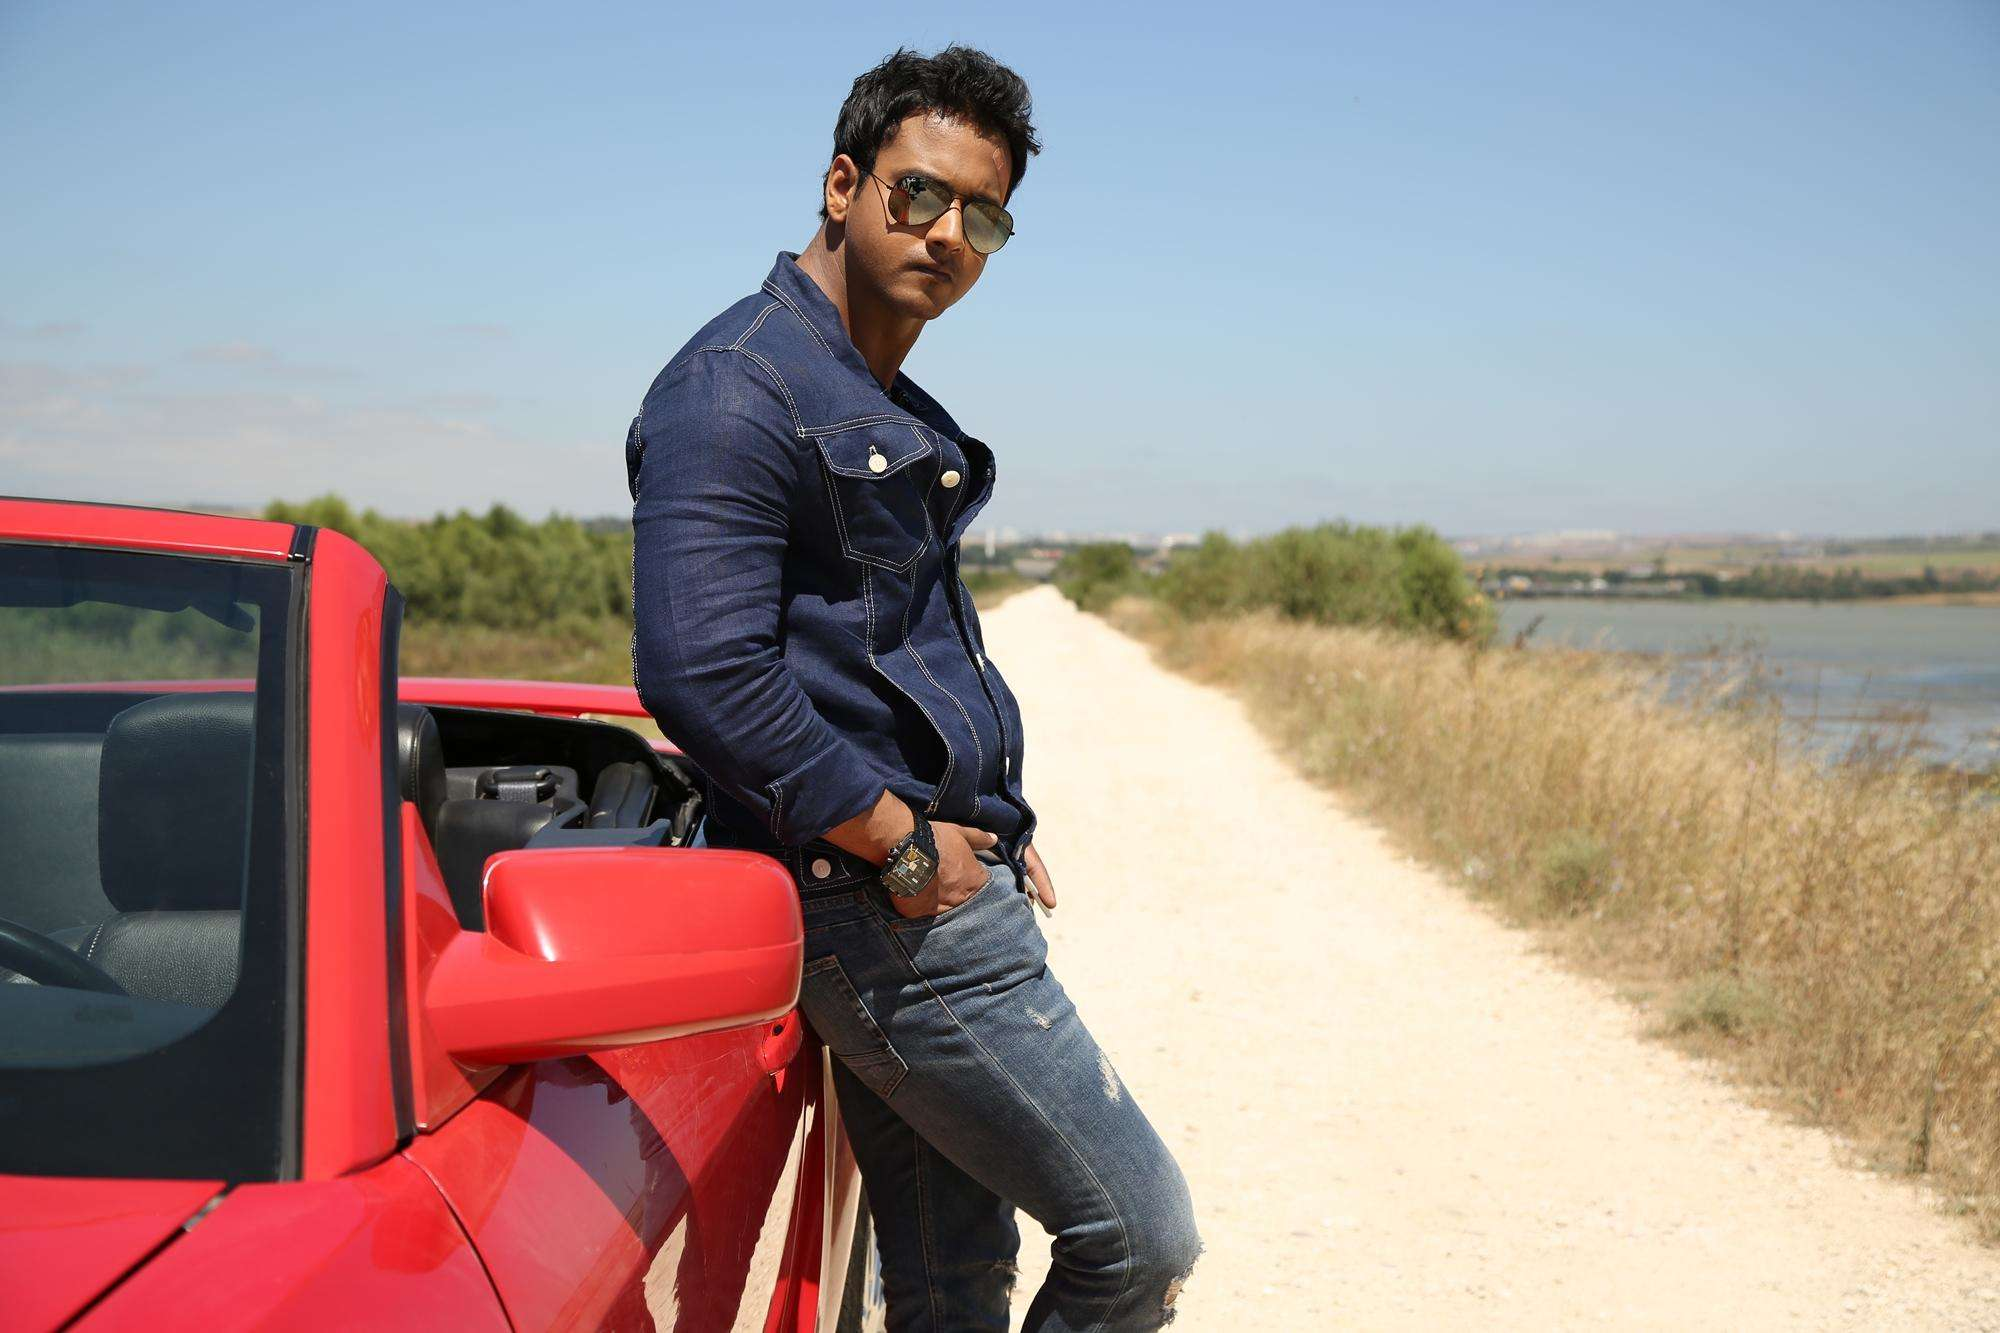 Love will find a new meaning in Gangster: Yash Dasgupta